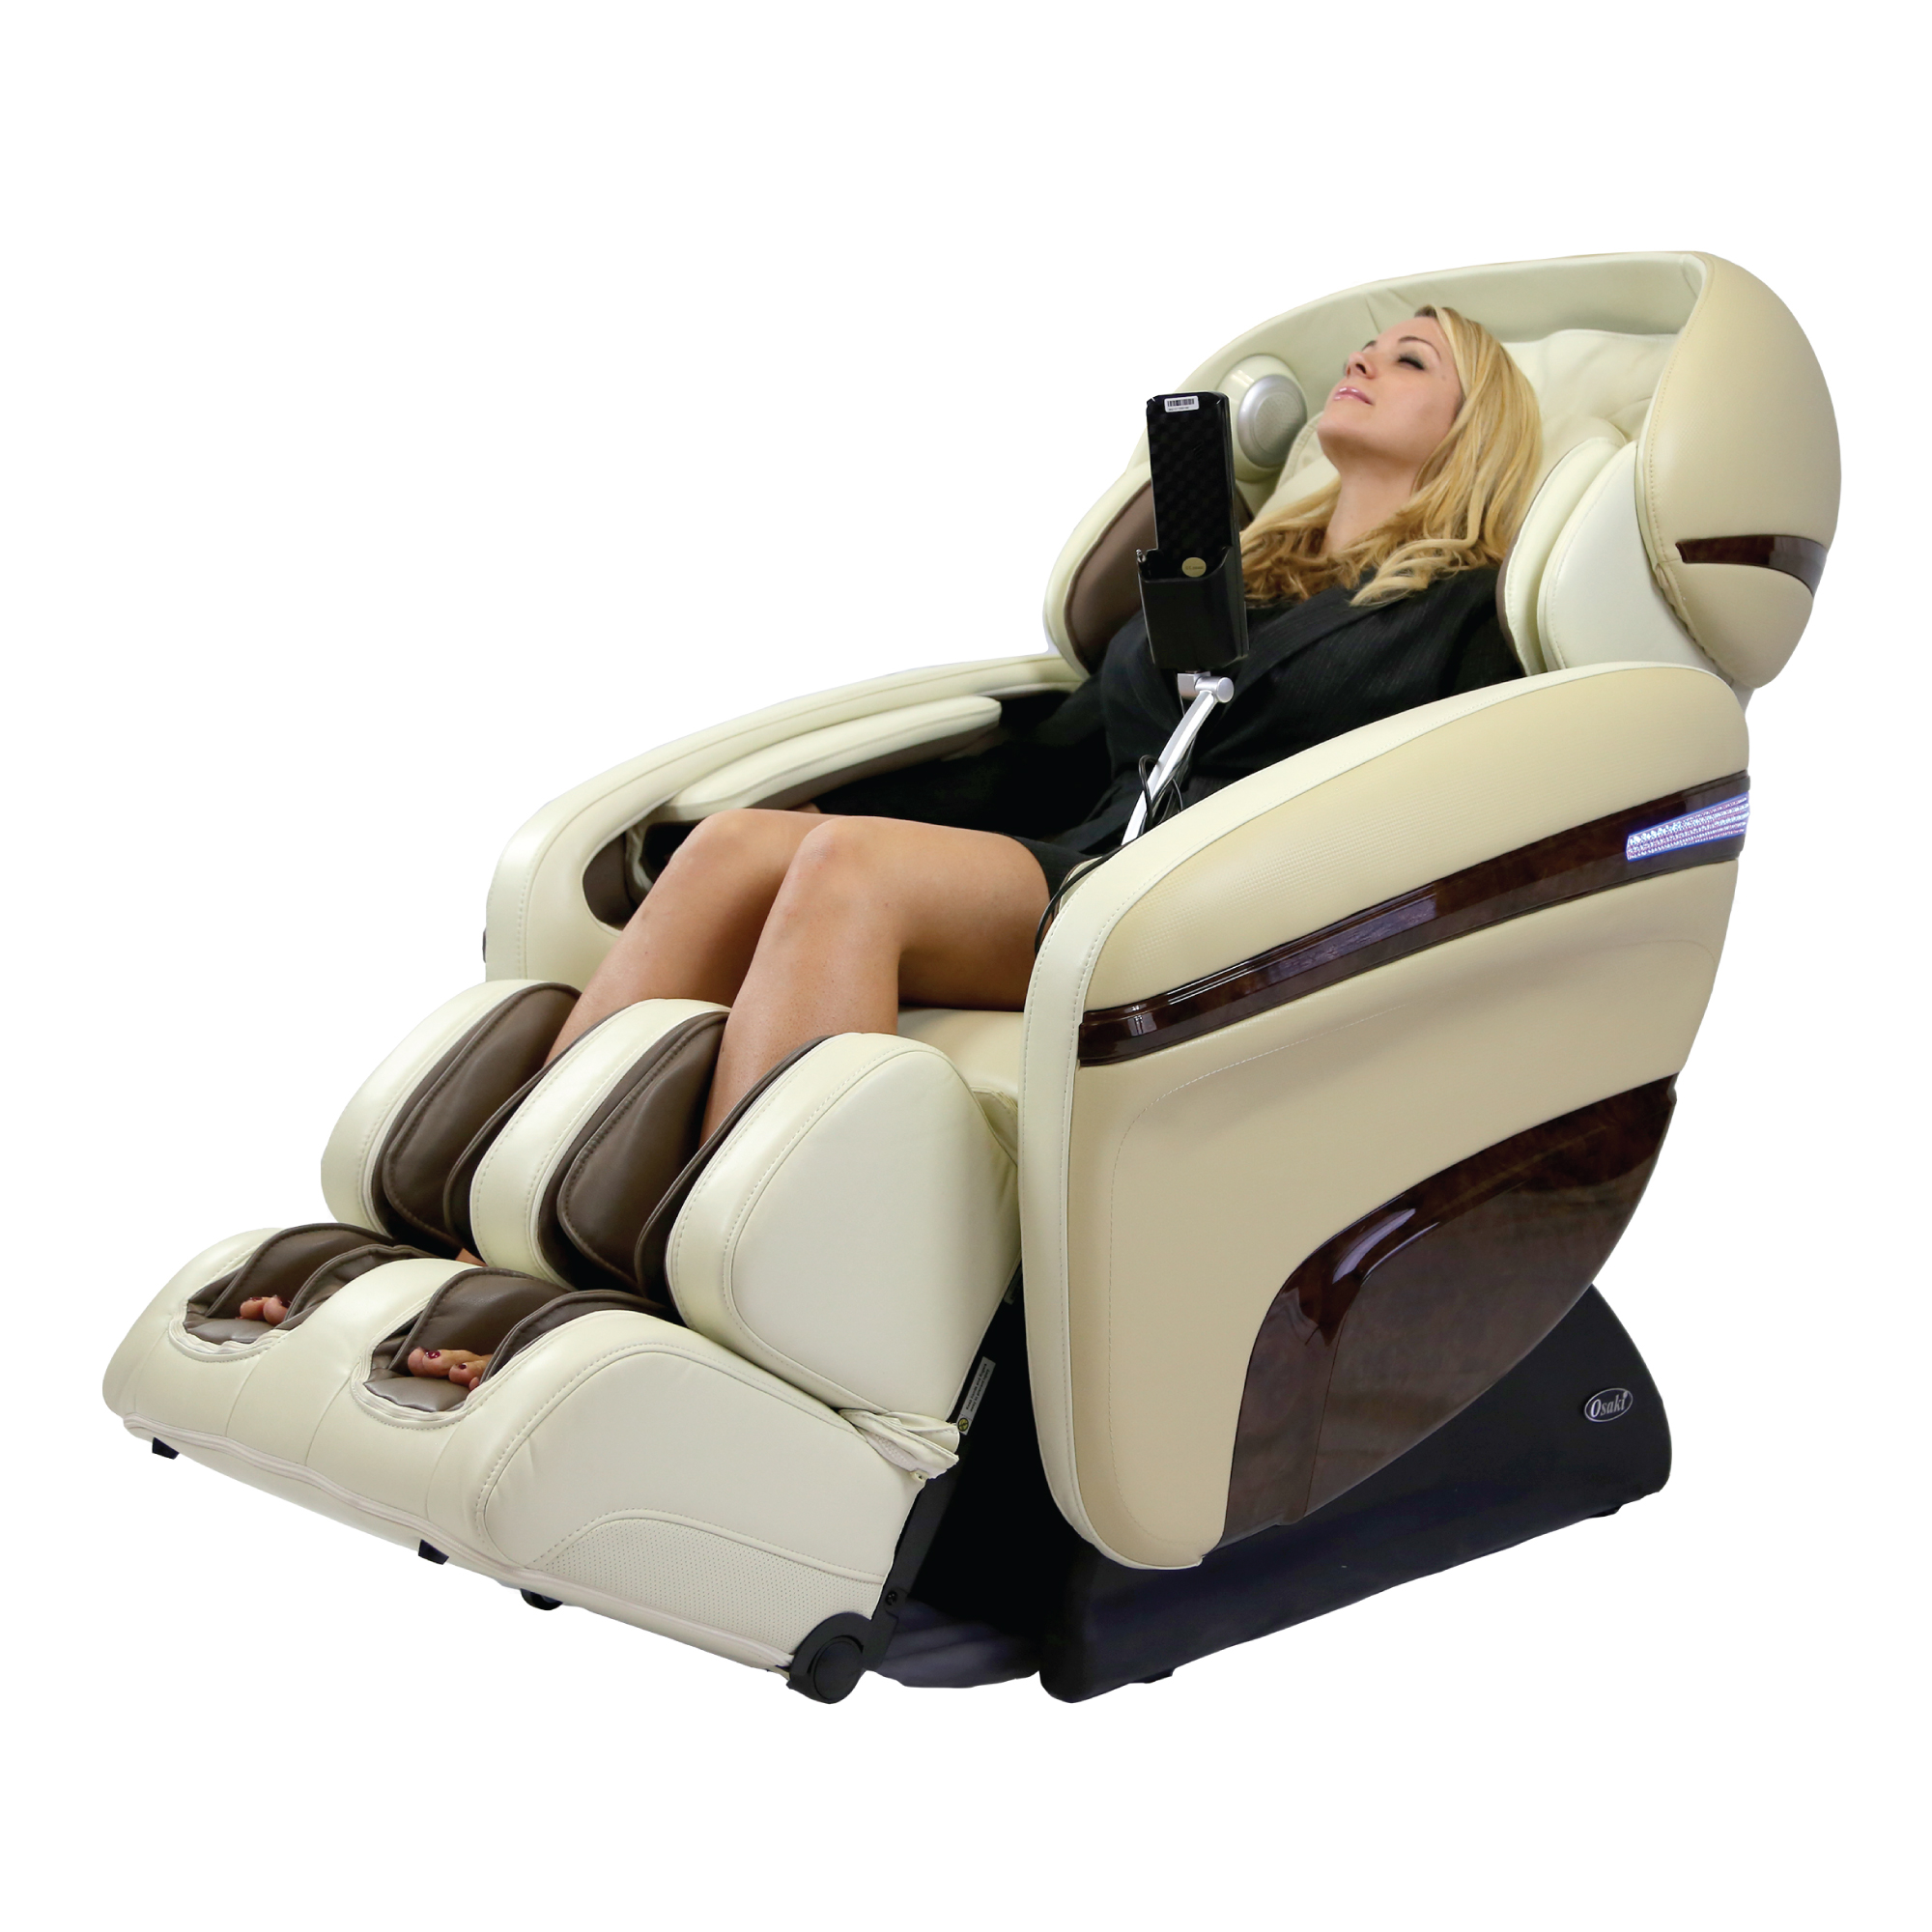 Massage Chairs Chicago | Osaki Massage Chair | Osaki Zero Gravity Massage Chair